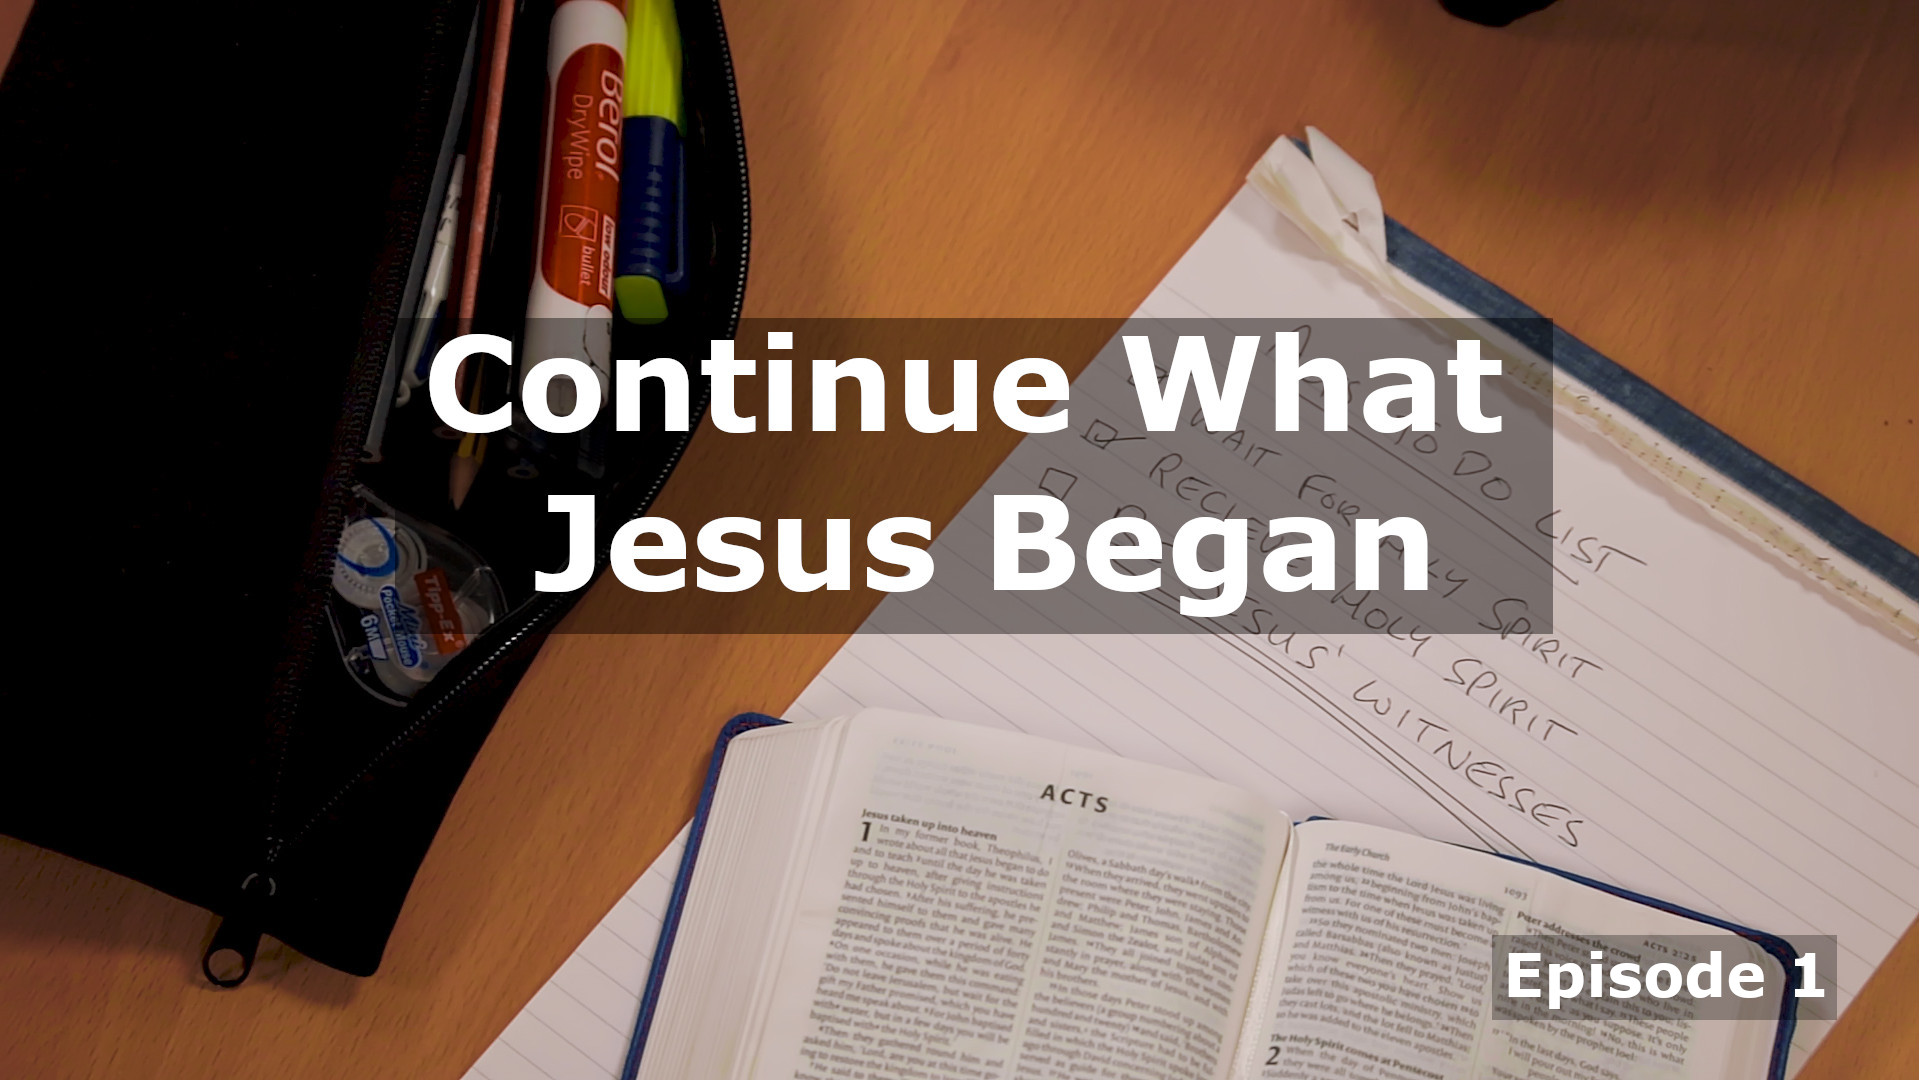 His Work Continues: Continue What Jesus Began